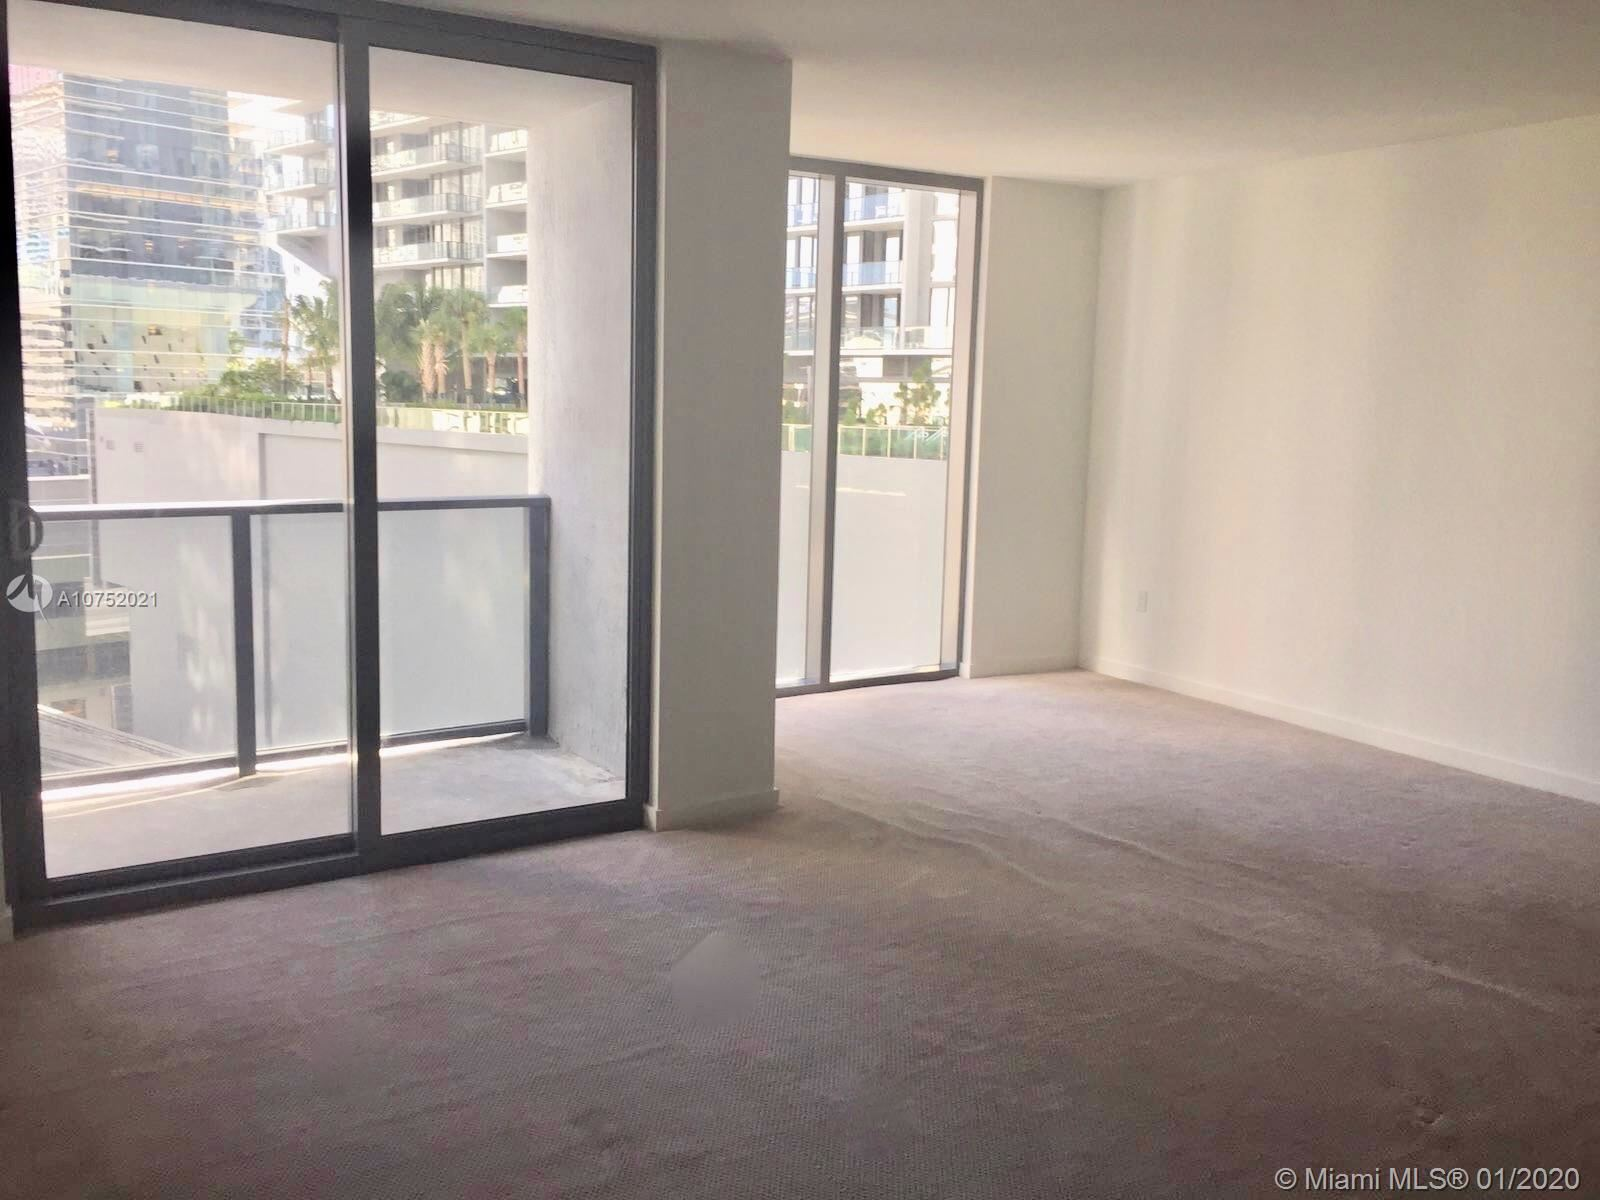 31 SE 6th St #403, Miami, FL 33131 - #: A10752021